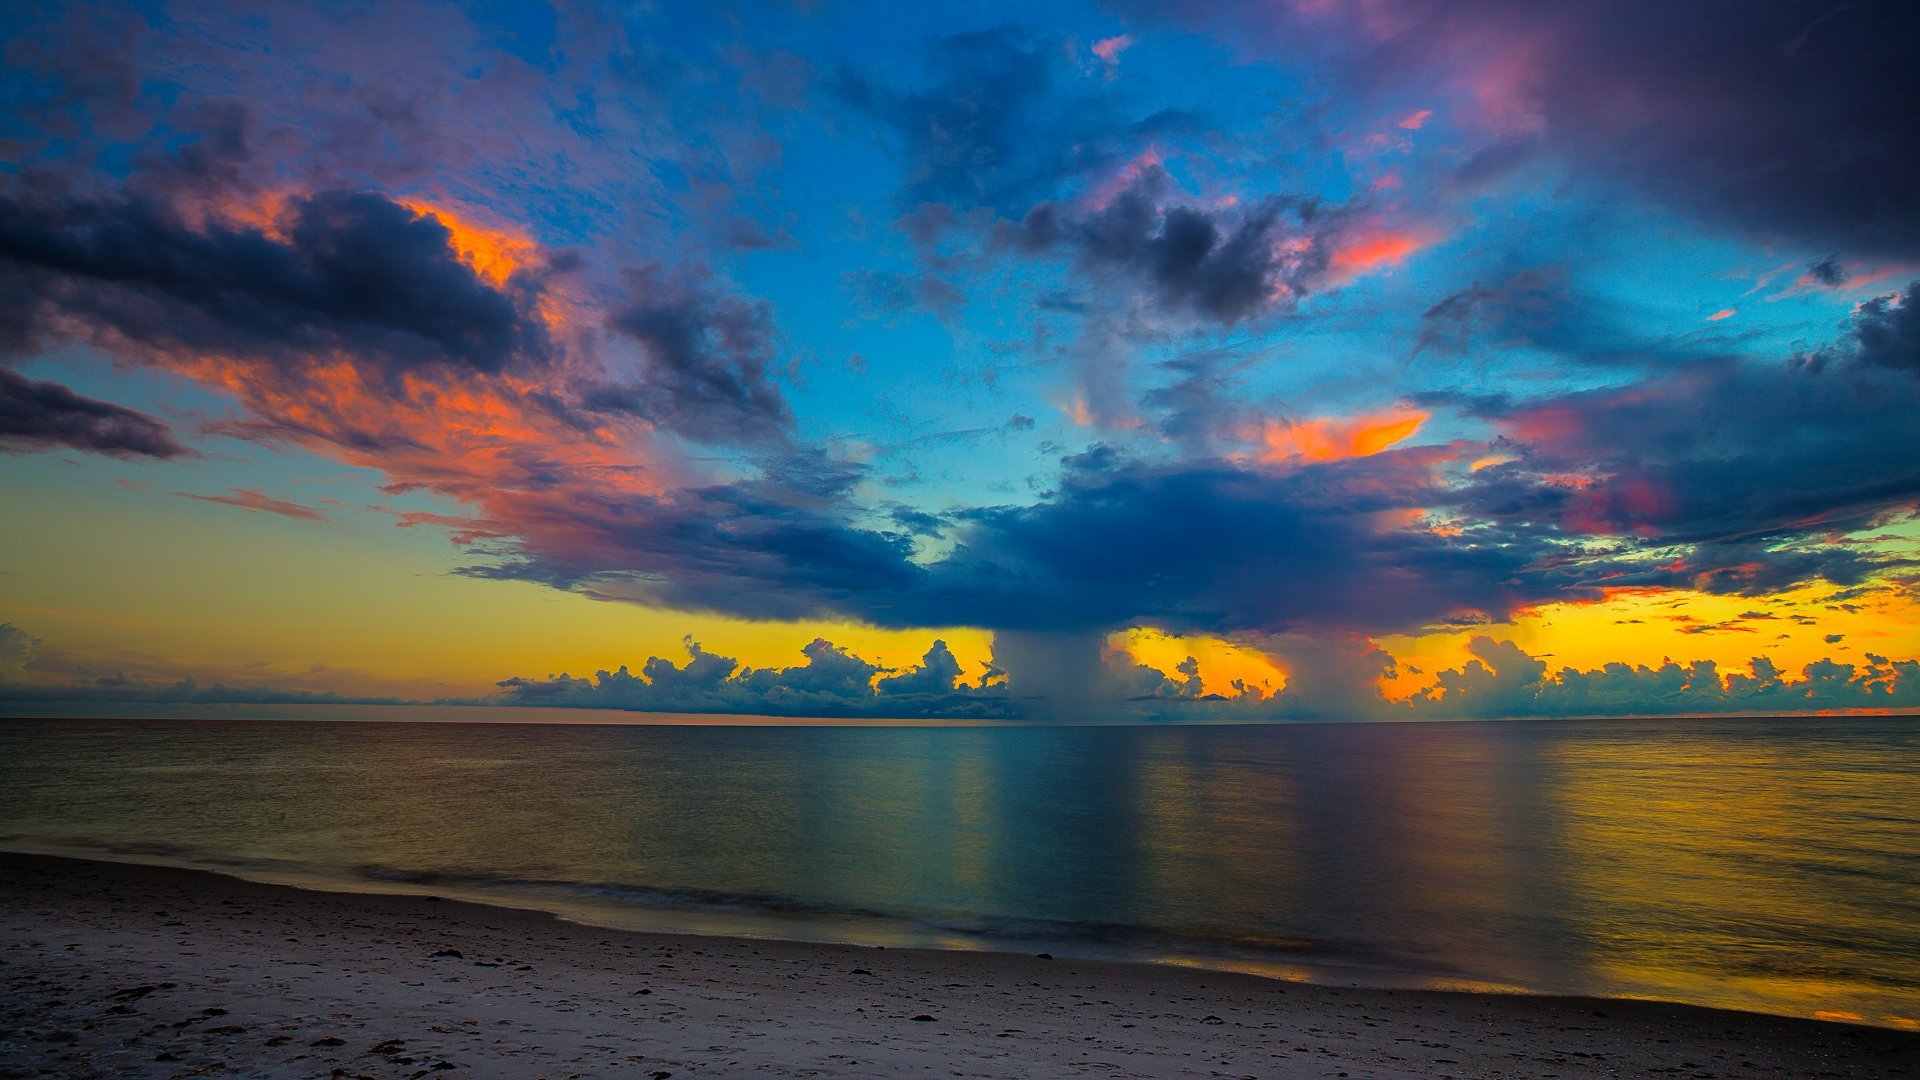 Florida Beach Sunset Full HD Wallpaper And Background